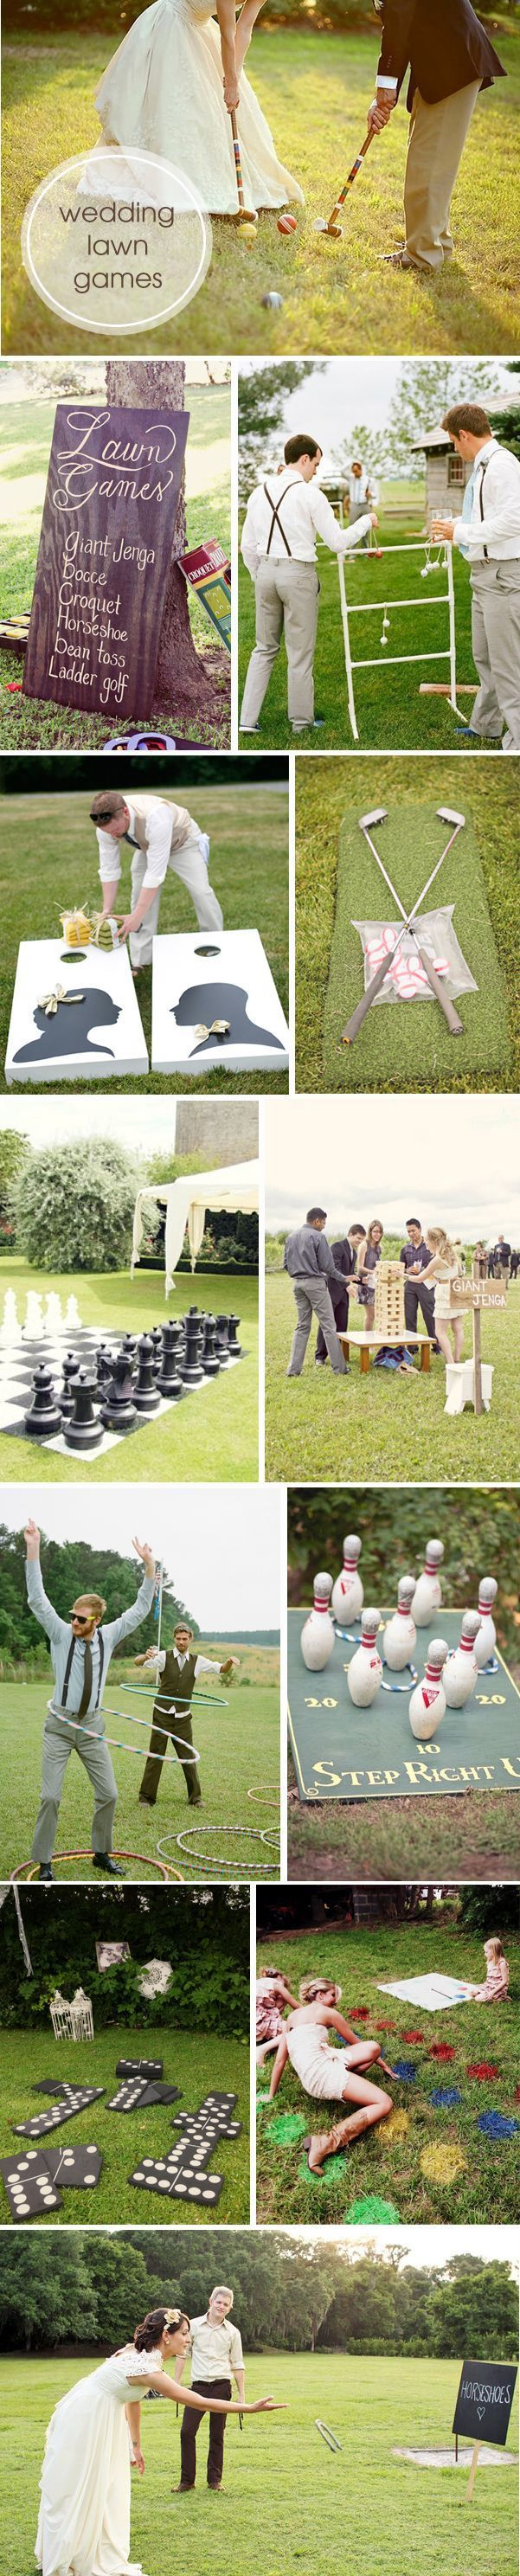 diy outdoor wedding best photos - outdoor wedding - cuteweddingideas.com